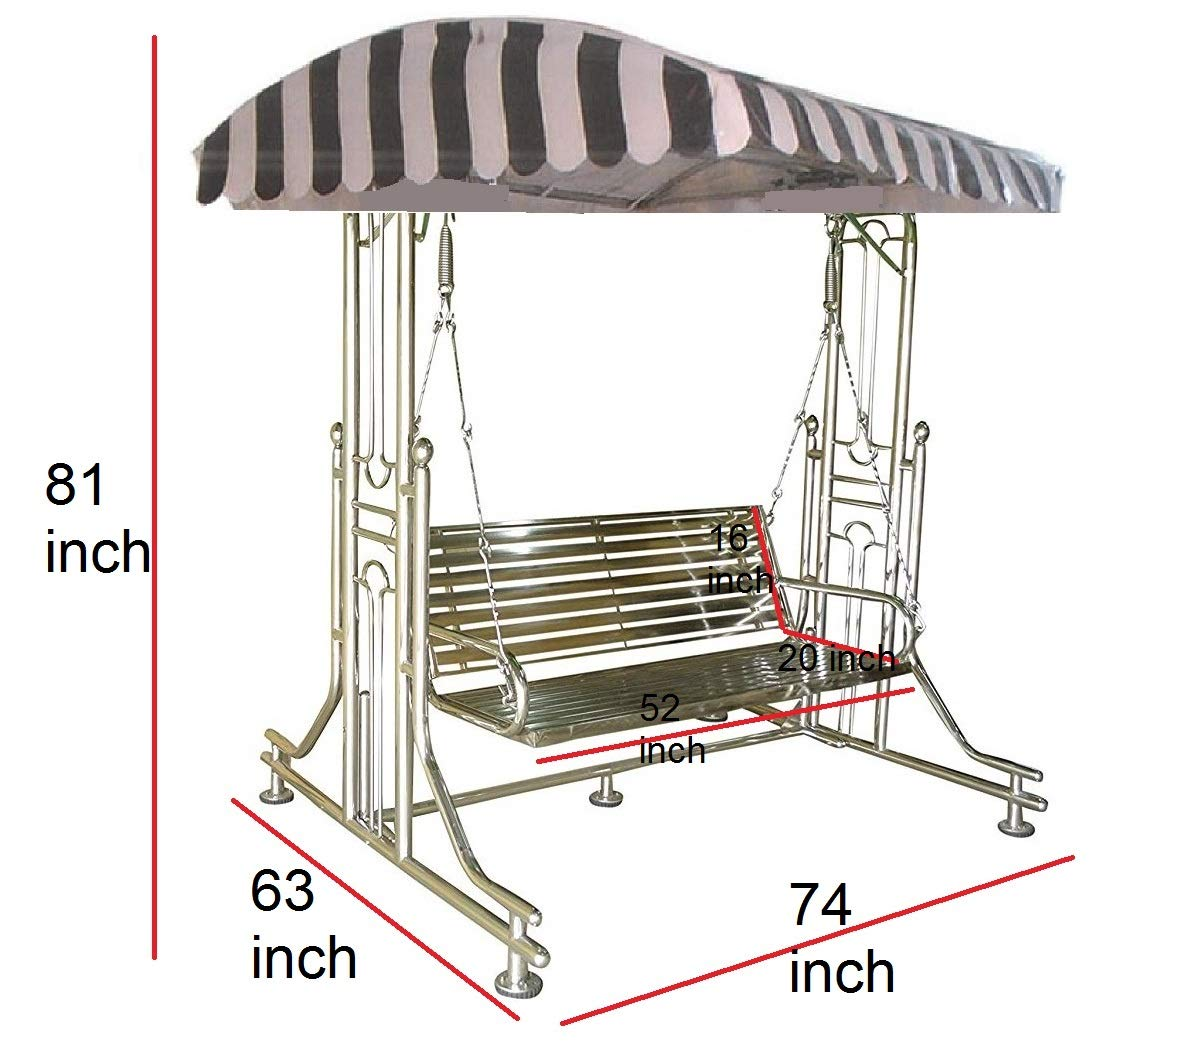 Kaushalendra Stainless Steel Swing 6 Person Jhula for Home Outdoor